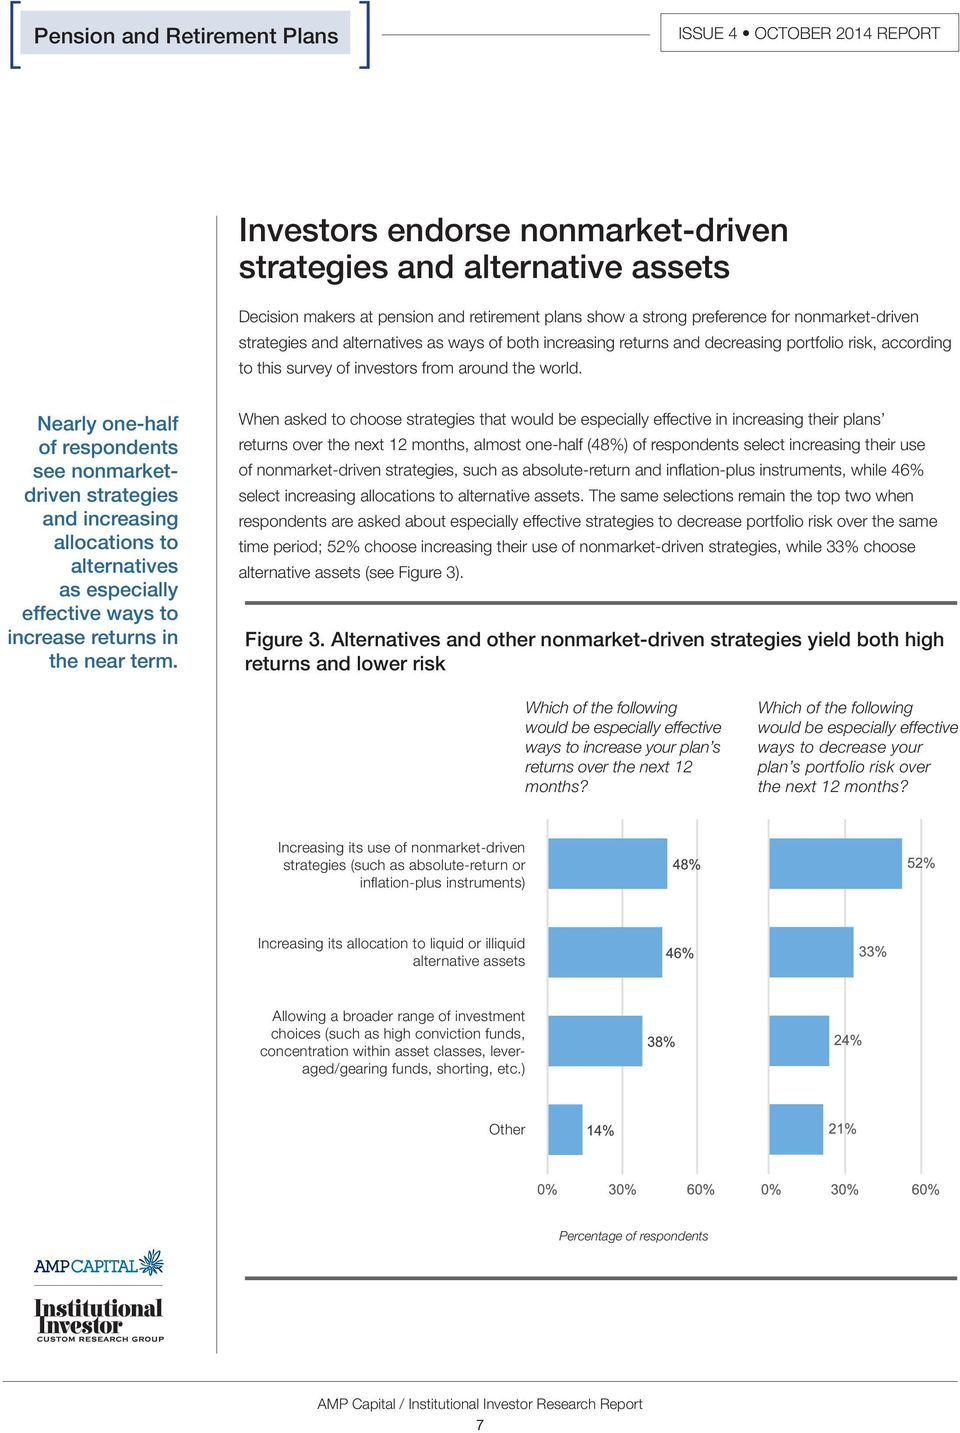 Nearly one-half of respondents see nonmarketdriven strategies and increasing allocations to alternatives as especially effective ways to increase returns in the near term.